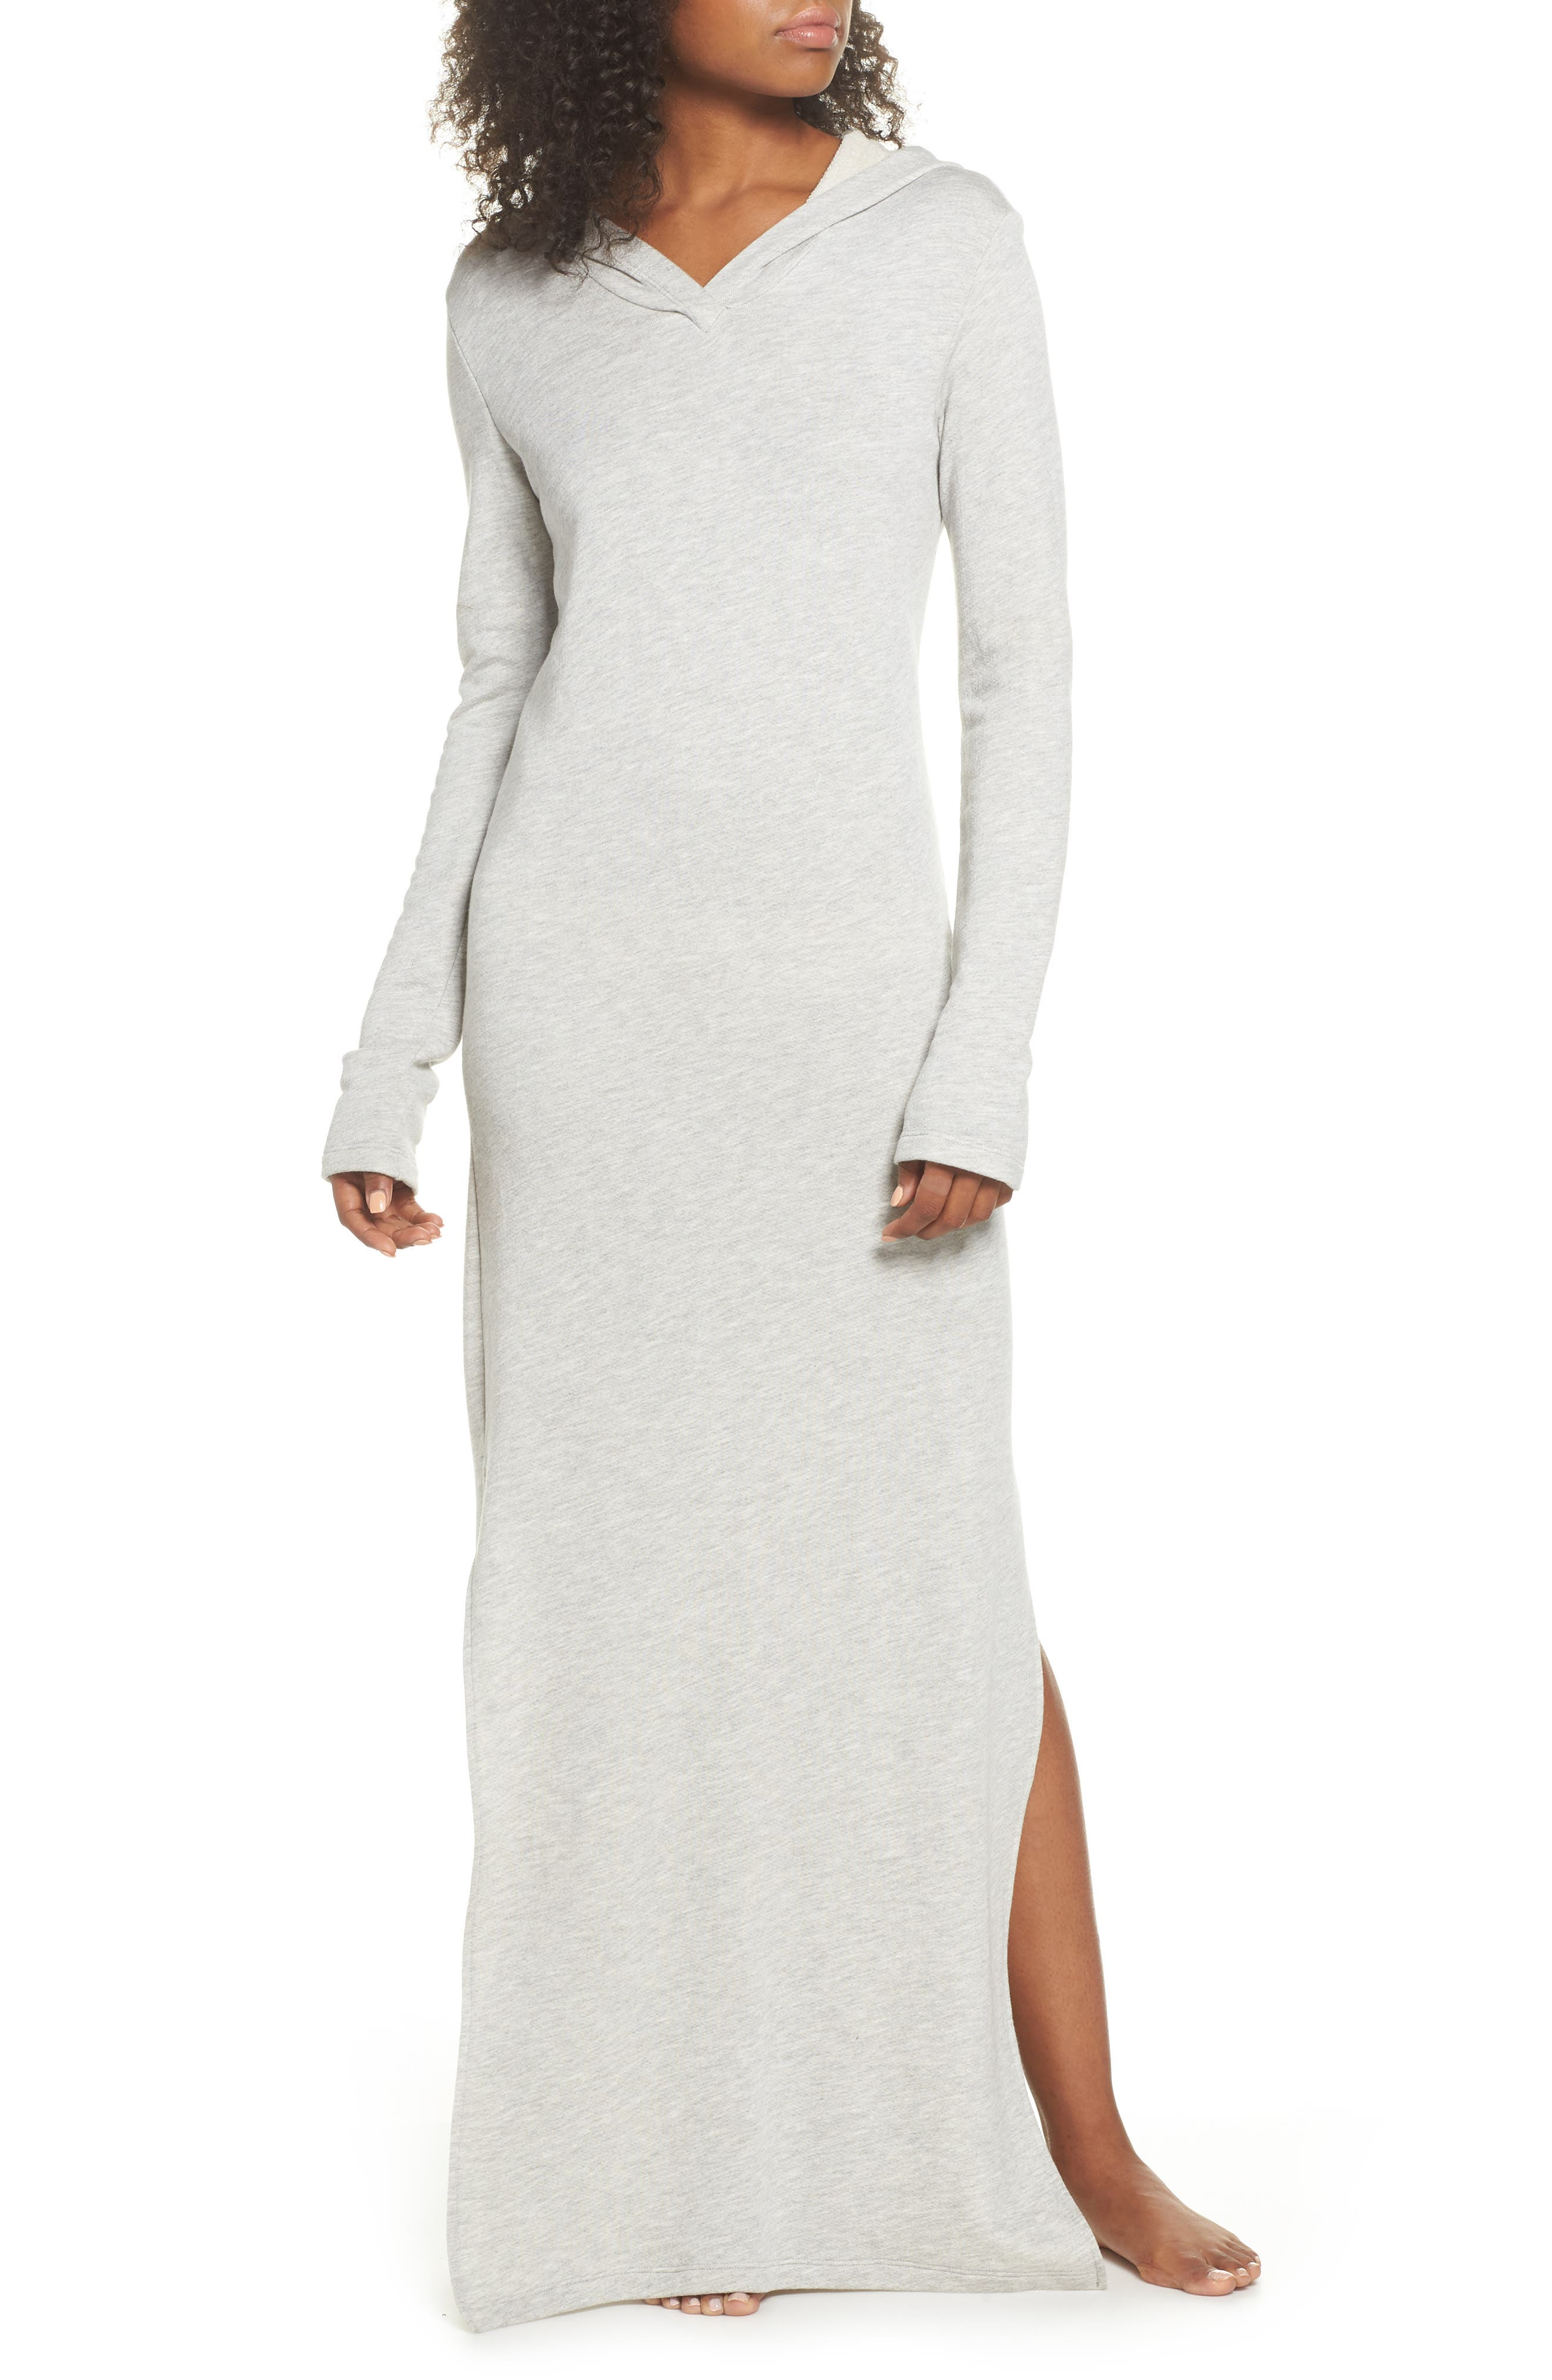 Hooded Terry Nightgown,                             Main thumbnail 1, color,                             Grey Terry